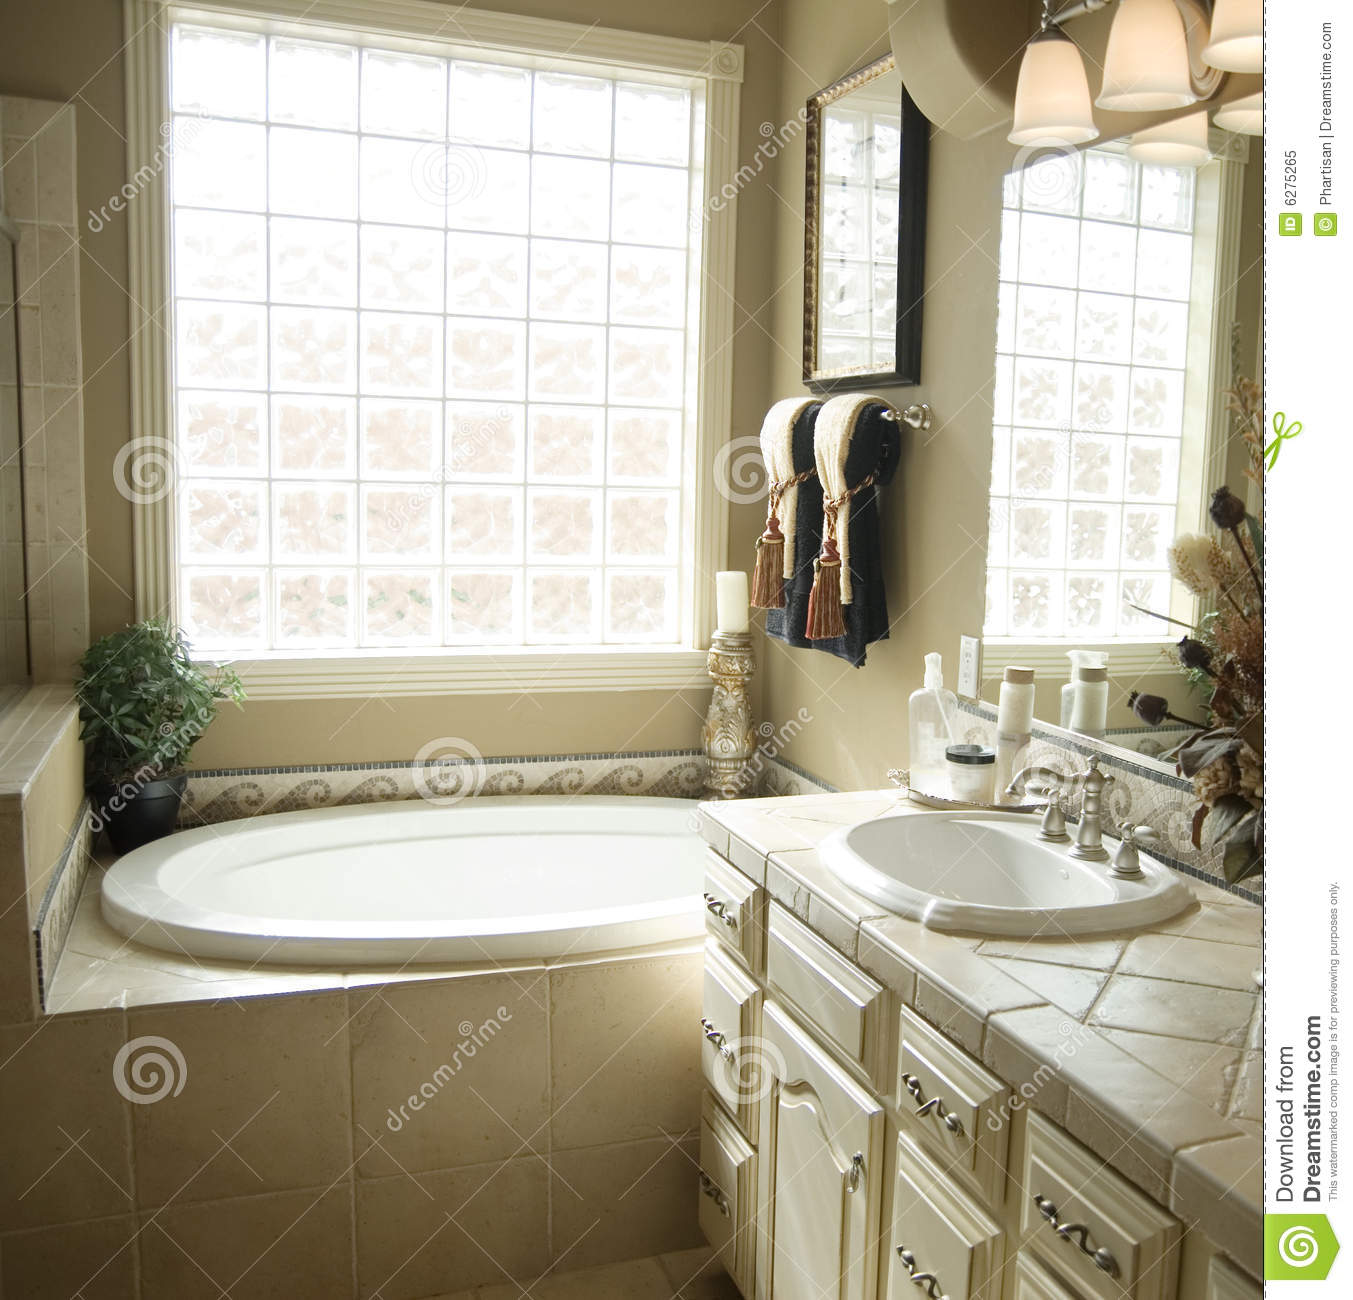 Beautiful bathroom interior design stock image image 6275265 Bathroom interior designs photos